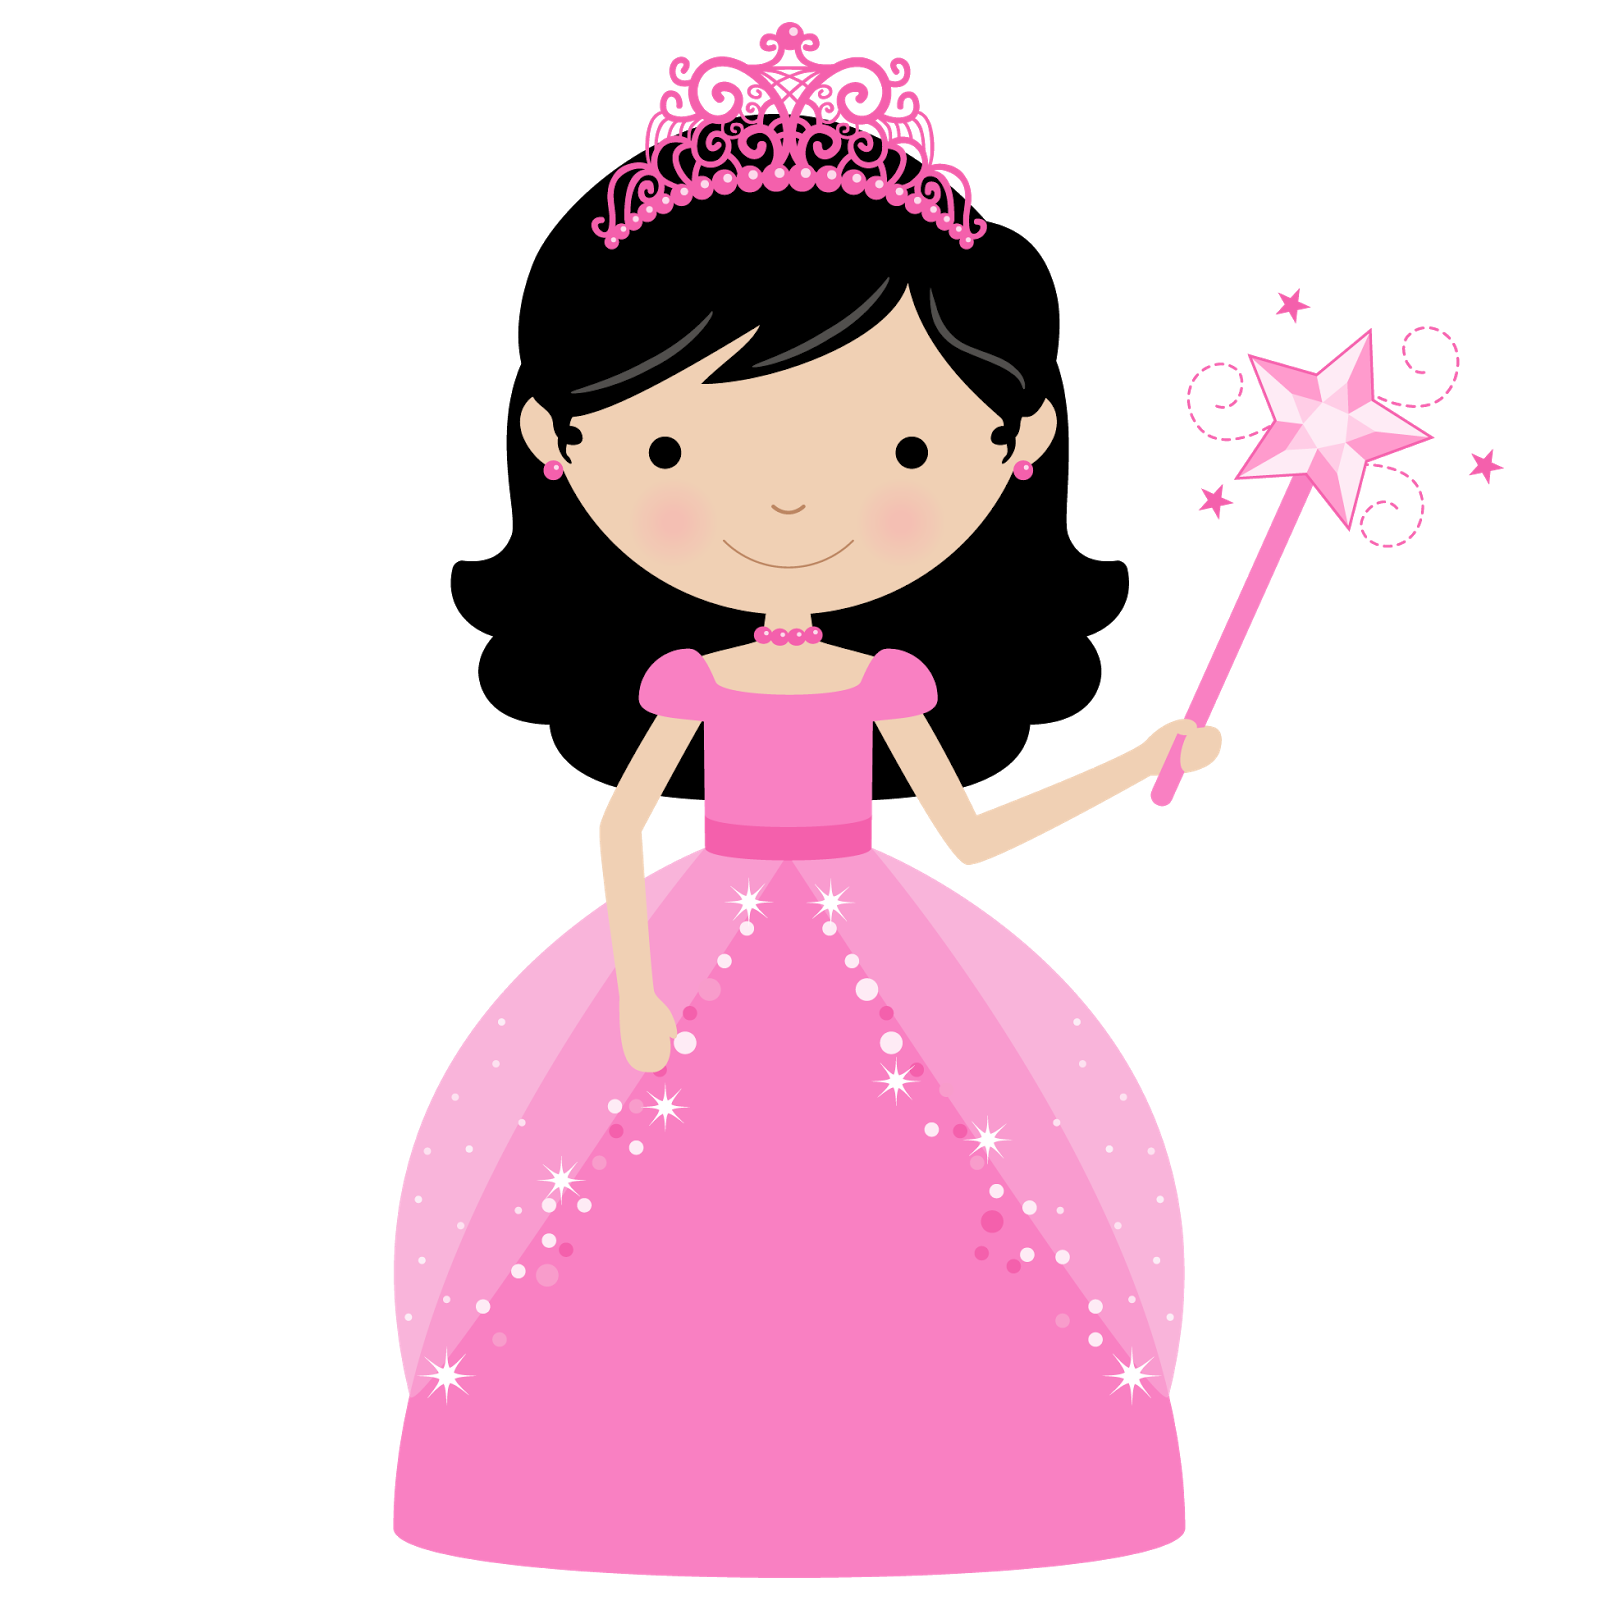 Baby crown clipart image free library Baby Disney Princess Clipart at GetDrawings.com | Free for personal ... image free library